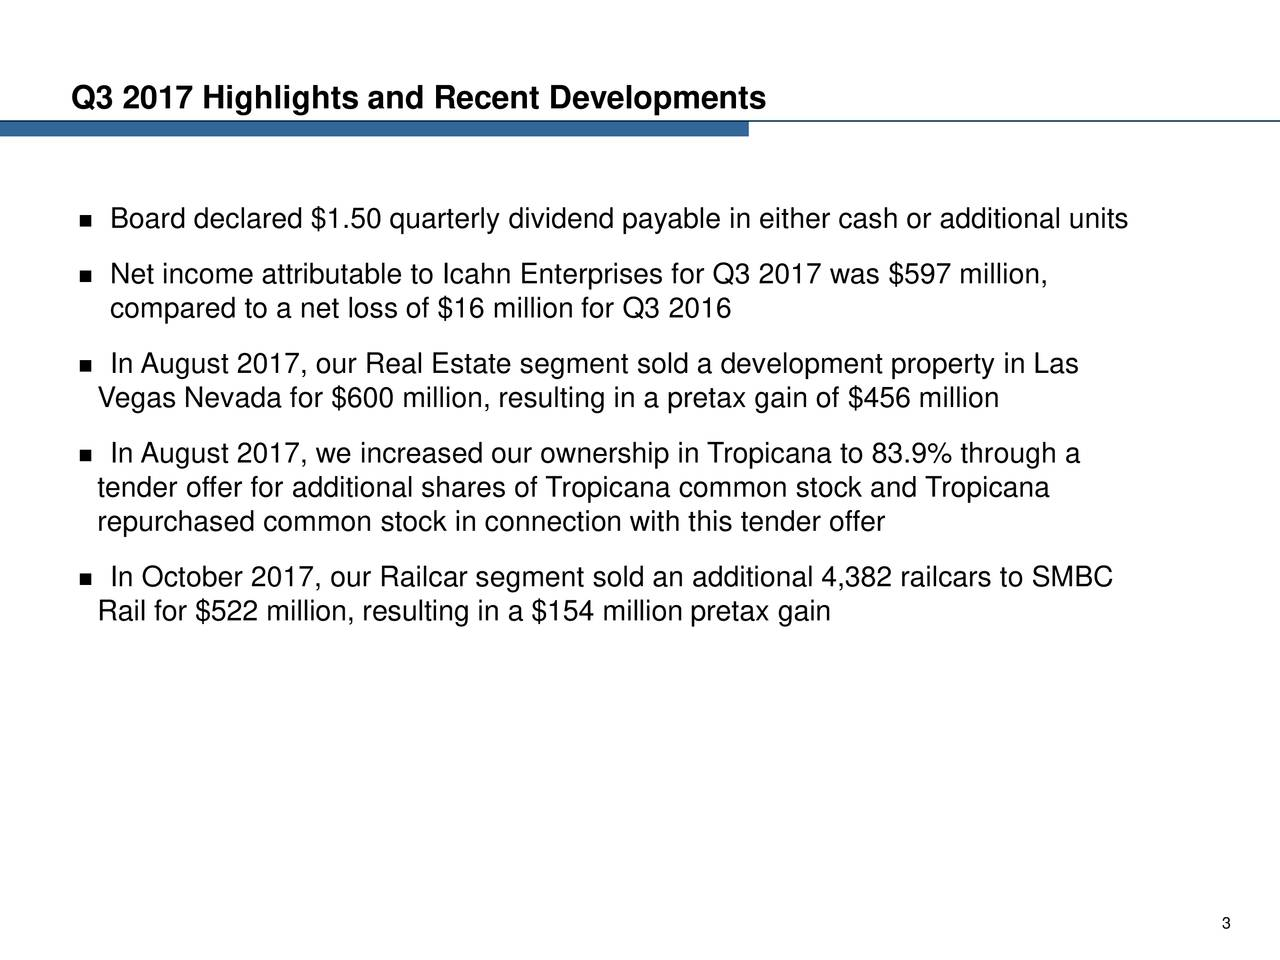  Board declared $1.50 quarterly dividend payable in either cash or additional units  Net income attributable to Icahn Enterprises for Q3 2017 was $597 million, compared to a net loss of $16 million for Q3 2016  In August 2017, our Real Estate segment sold a development property in Las Vegas Nevada for $600 million, resulting in a pretax gain of $456 million  In August 2017, we increased our ownership in Tropicana to 83.9% through a tender offer for additional shares of Tropicana common stock and Tropicana repurchased common stock in connection with this tender offer  In October 2017, our Railcar segment sold an additional 4,382 railcars to SMBC Rail for $522 million, resulting in a $154 million pretax gain 3